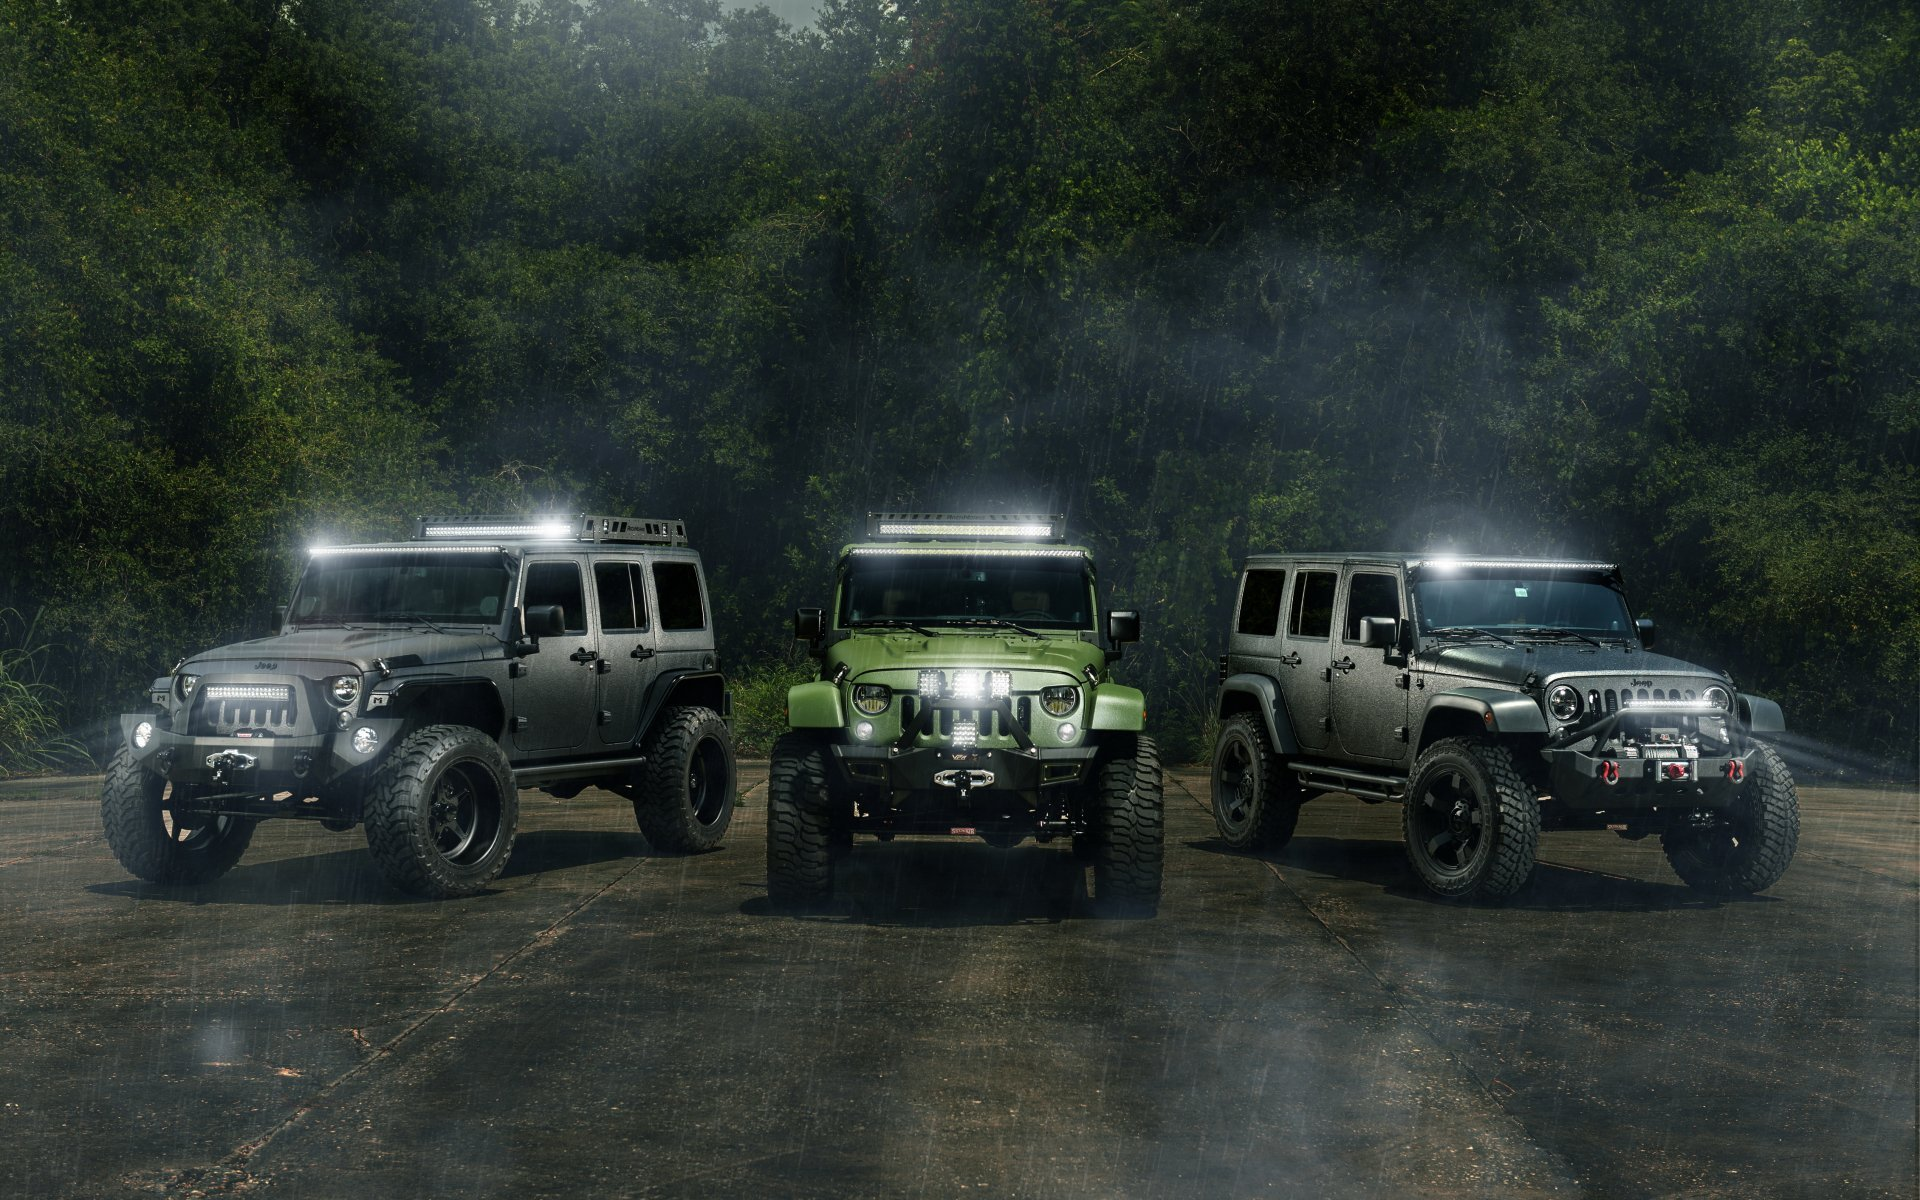 Jeep Wrangler Wallpapers on WallpaperSafari